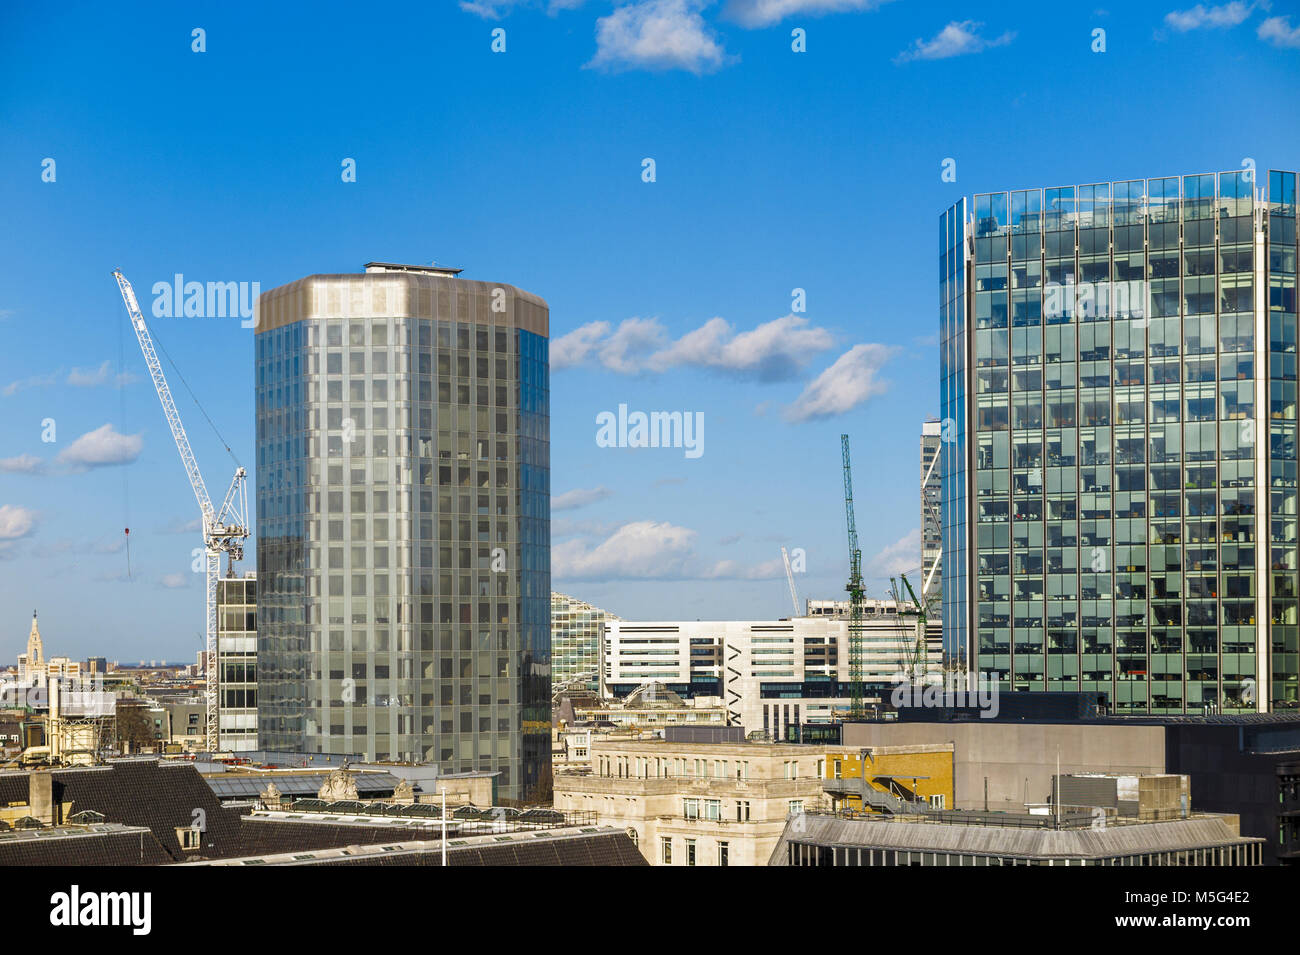 Angel Court in the City of London Bank Conservation Area and Stock Exchange Tower, EC2, London's financial district Stock Photo